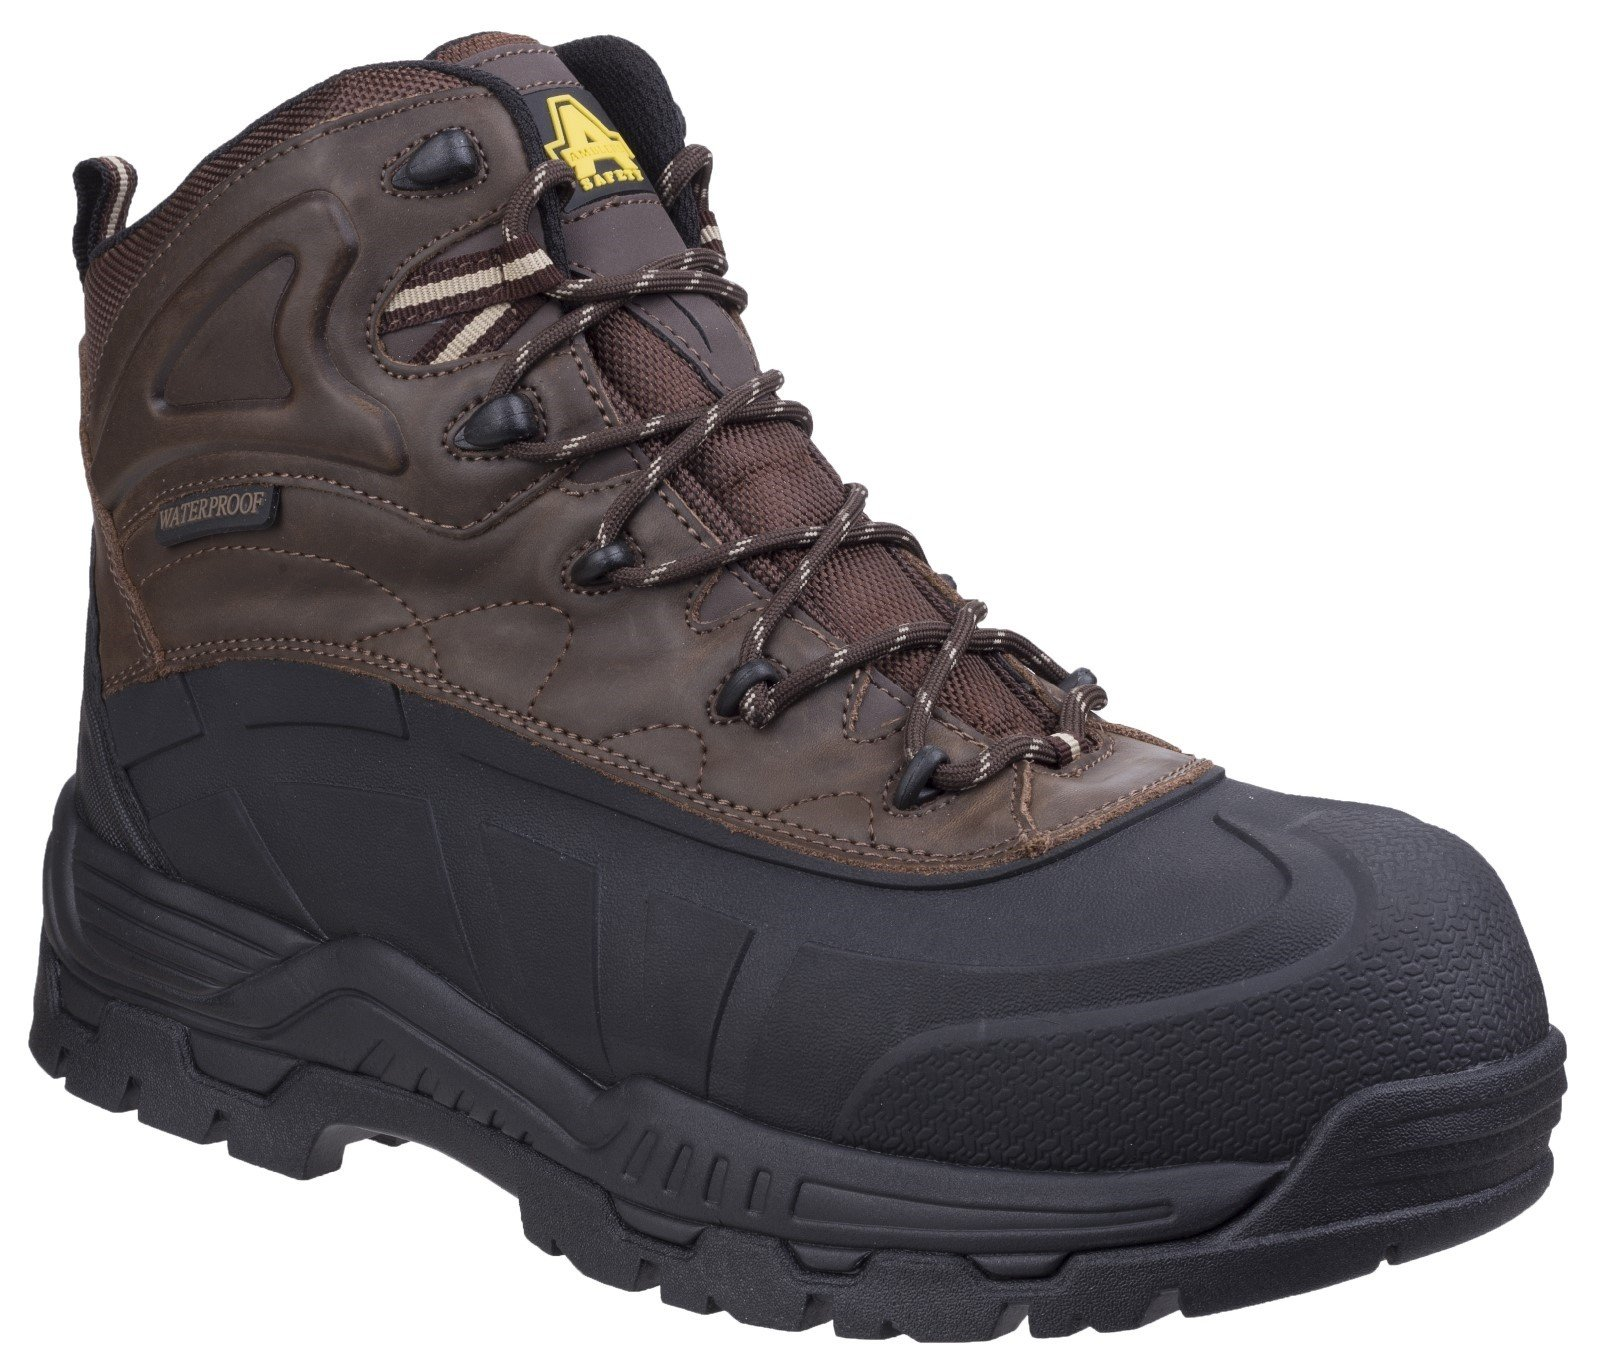 Amblers Unisex Safety Orca Safety Boot Brown 25156 - Brown 4